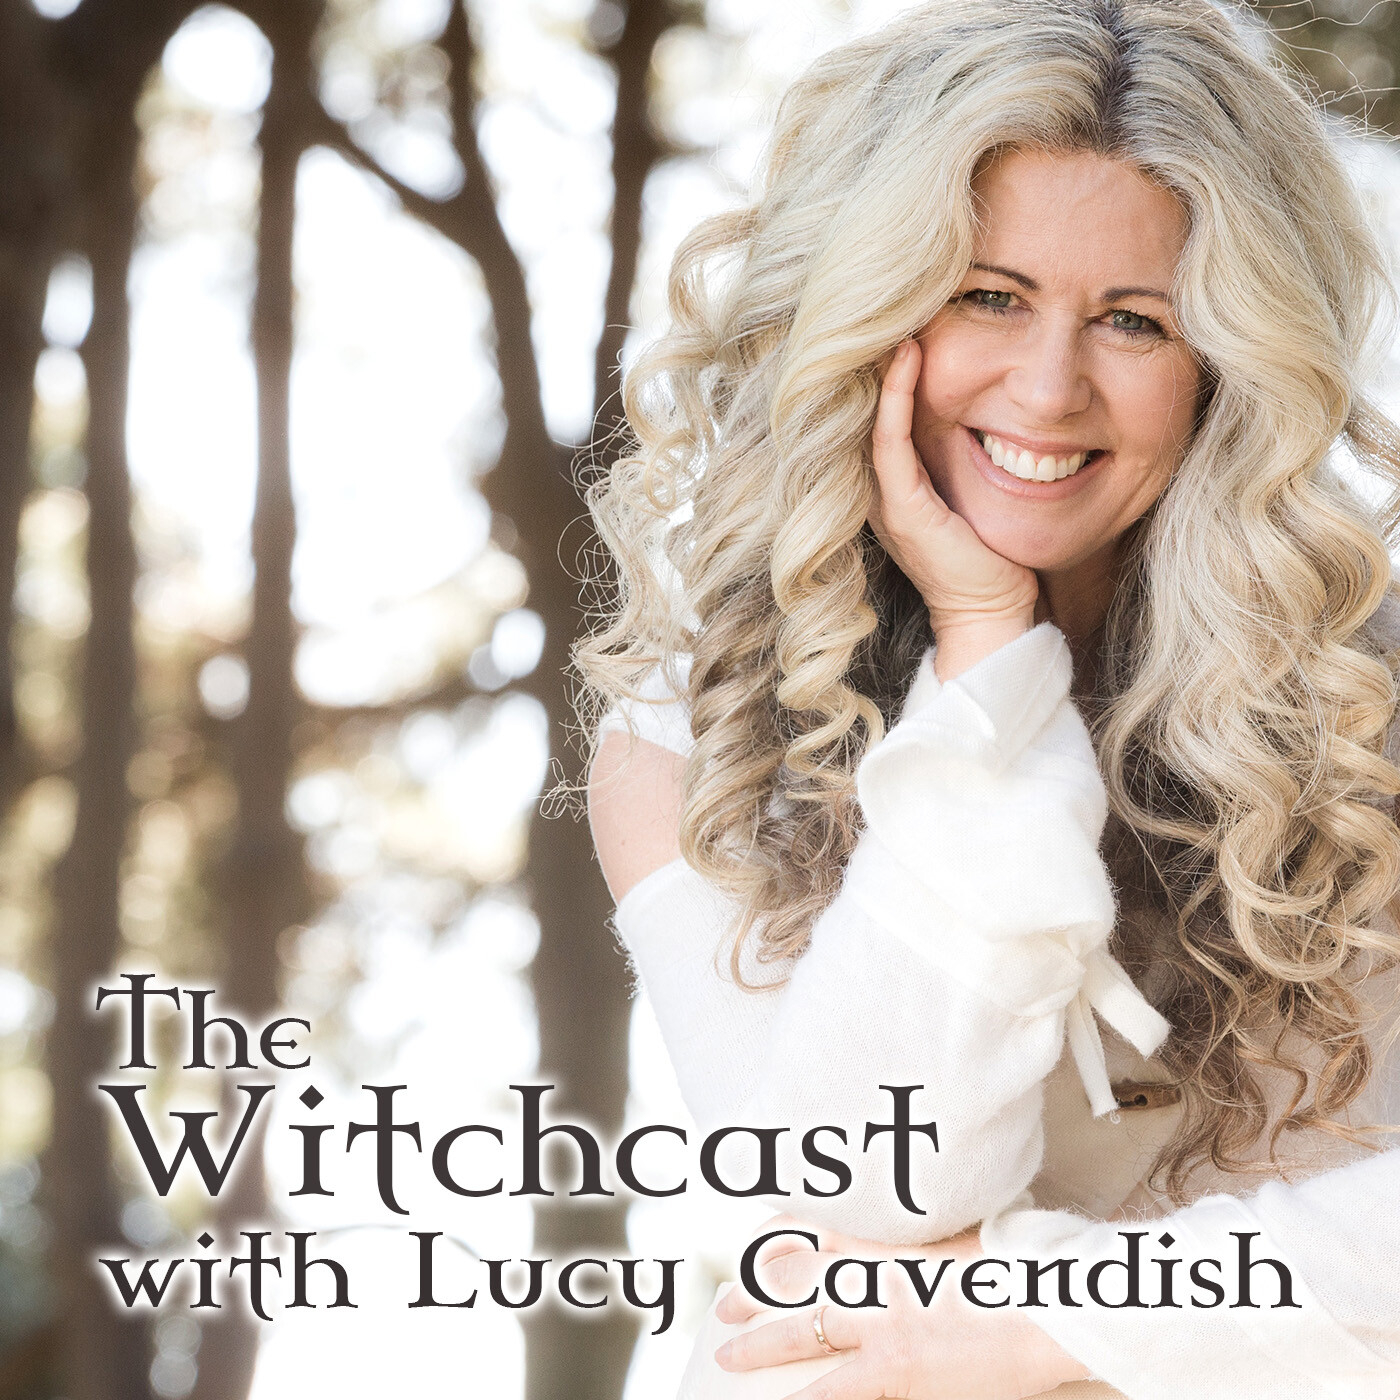 The Witchcast Presented By Lucy Cavendish podcast show image